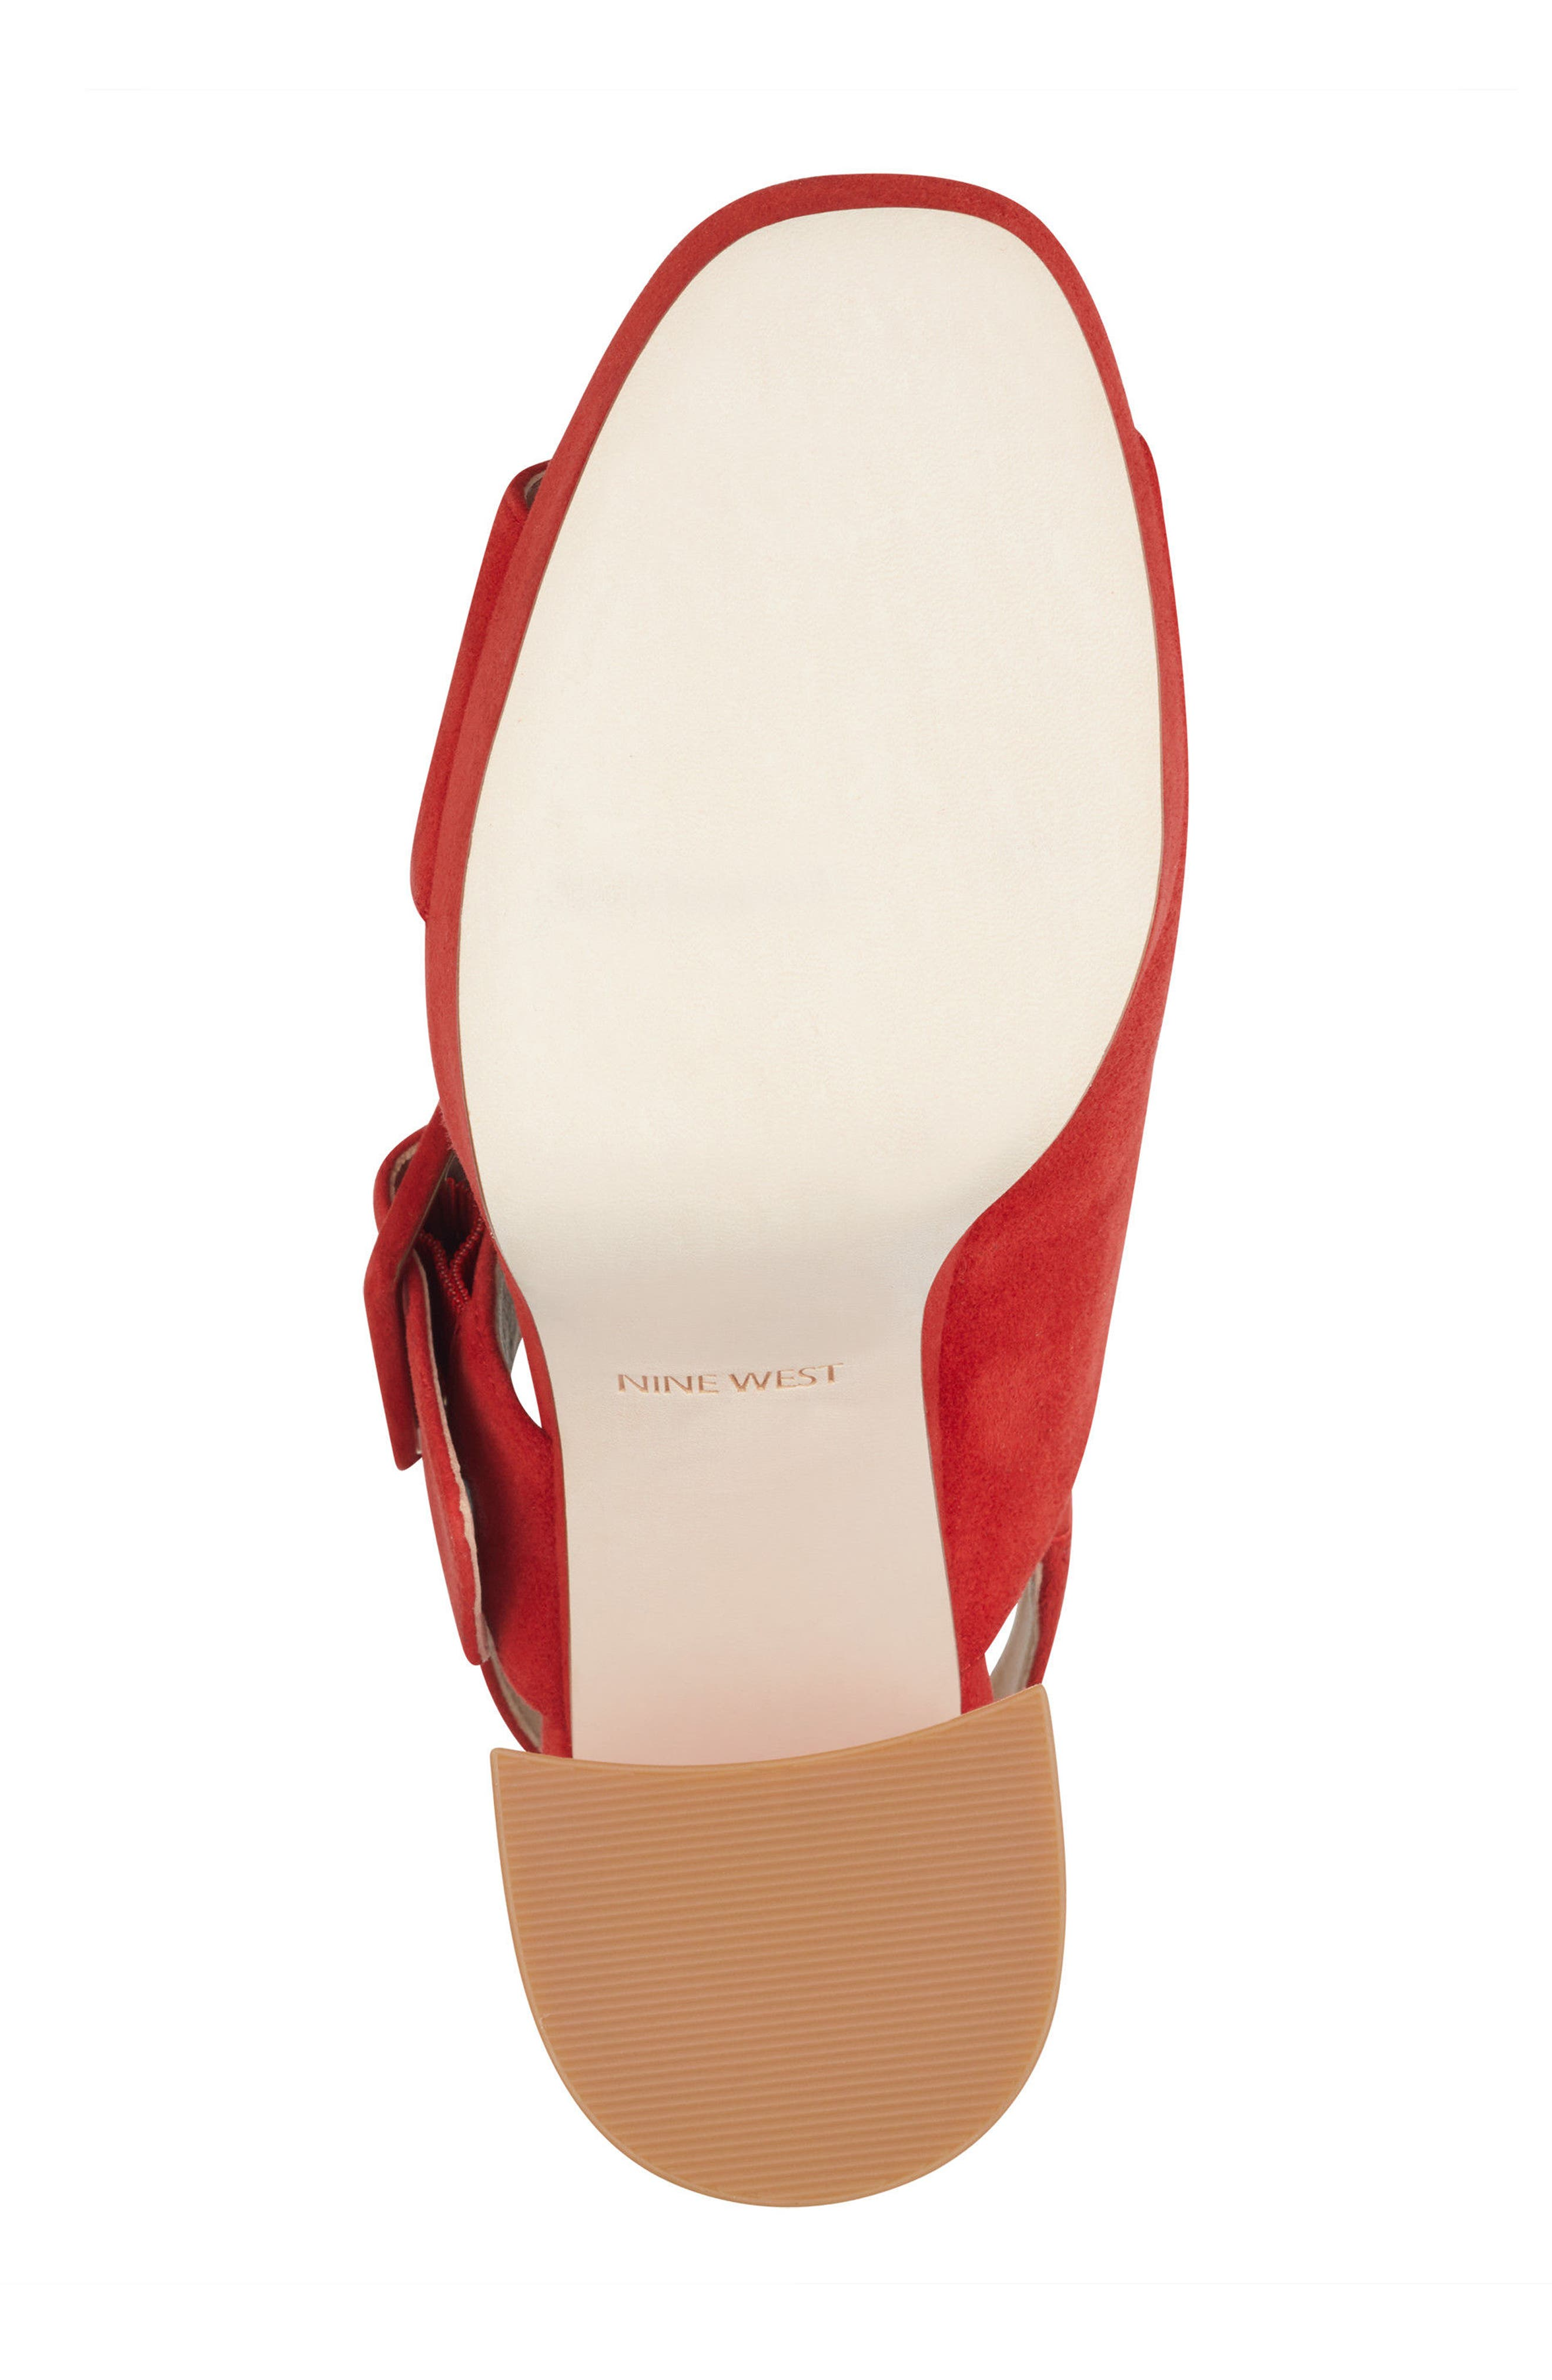 Lexine - 40th Anniversary Capsule Collection Platform Sandal,                             Alternate thumbnail 6, color,                             Red Leather